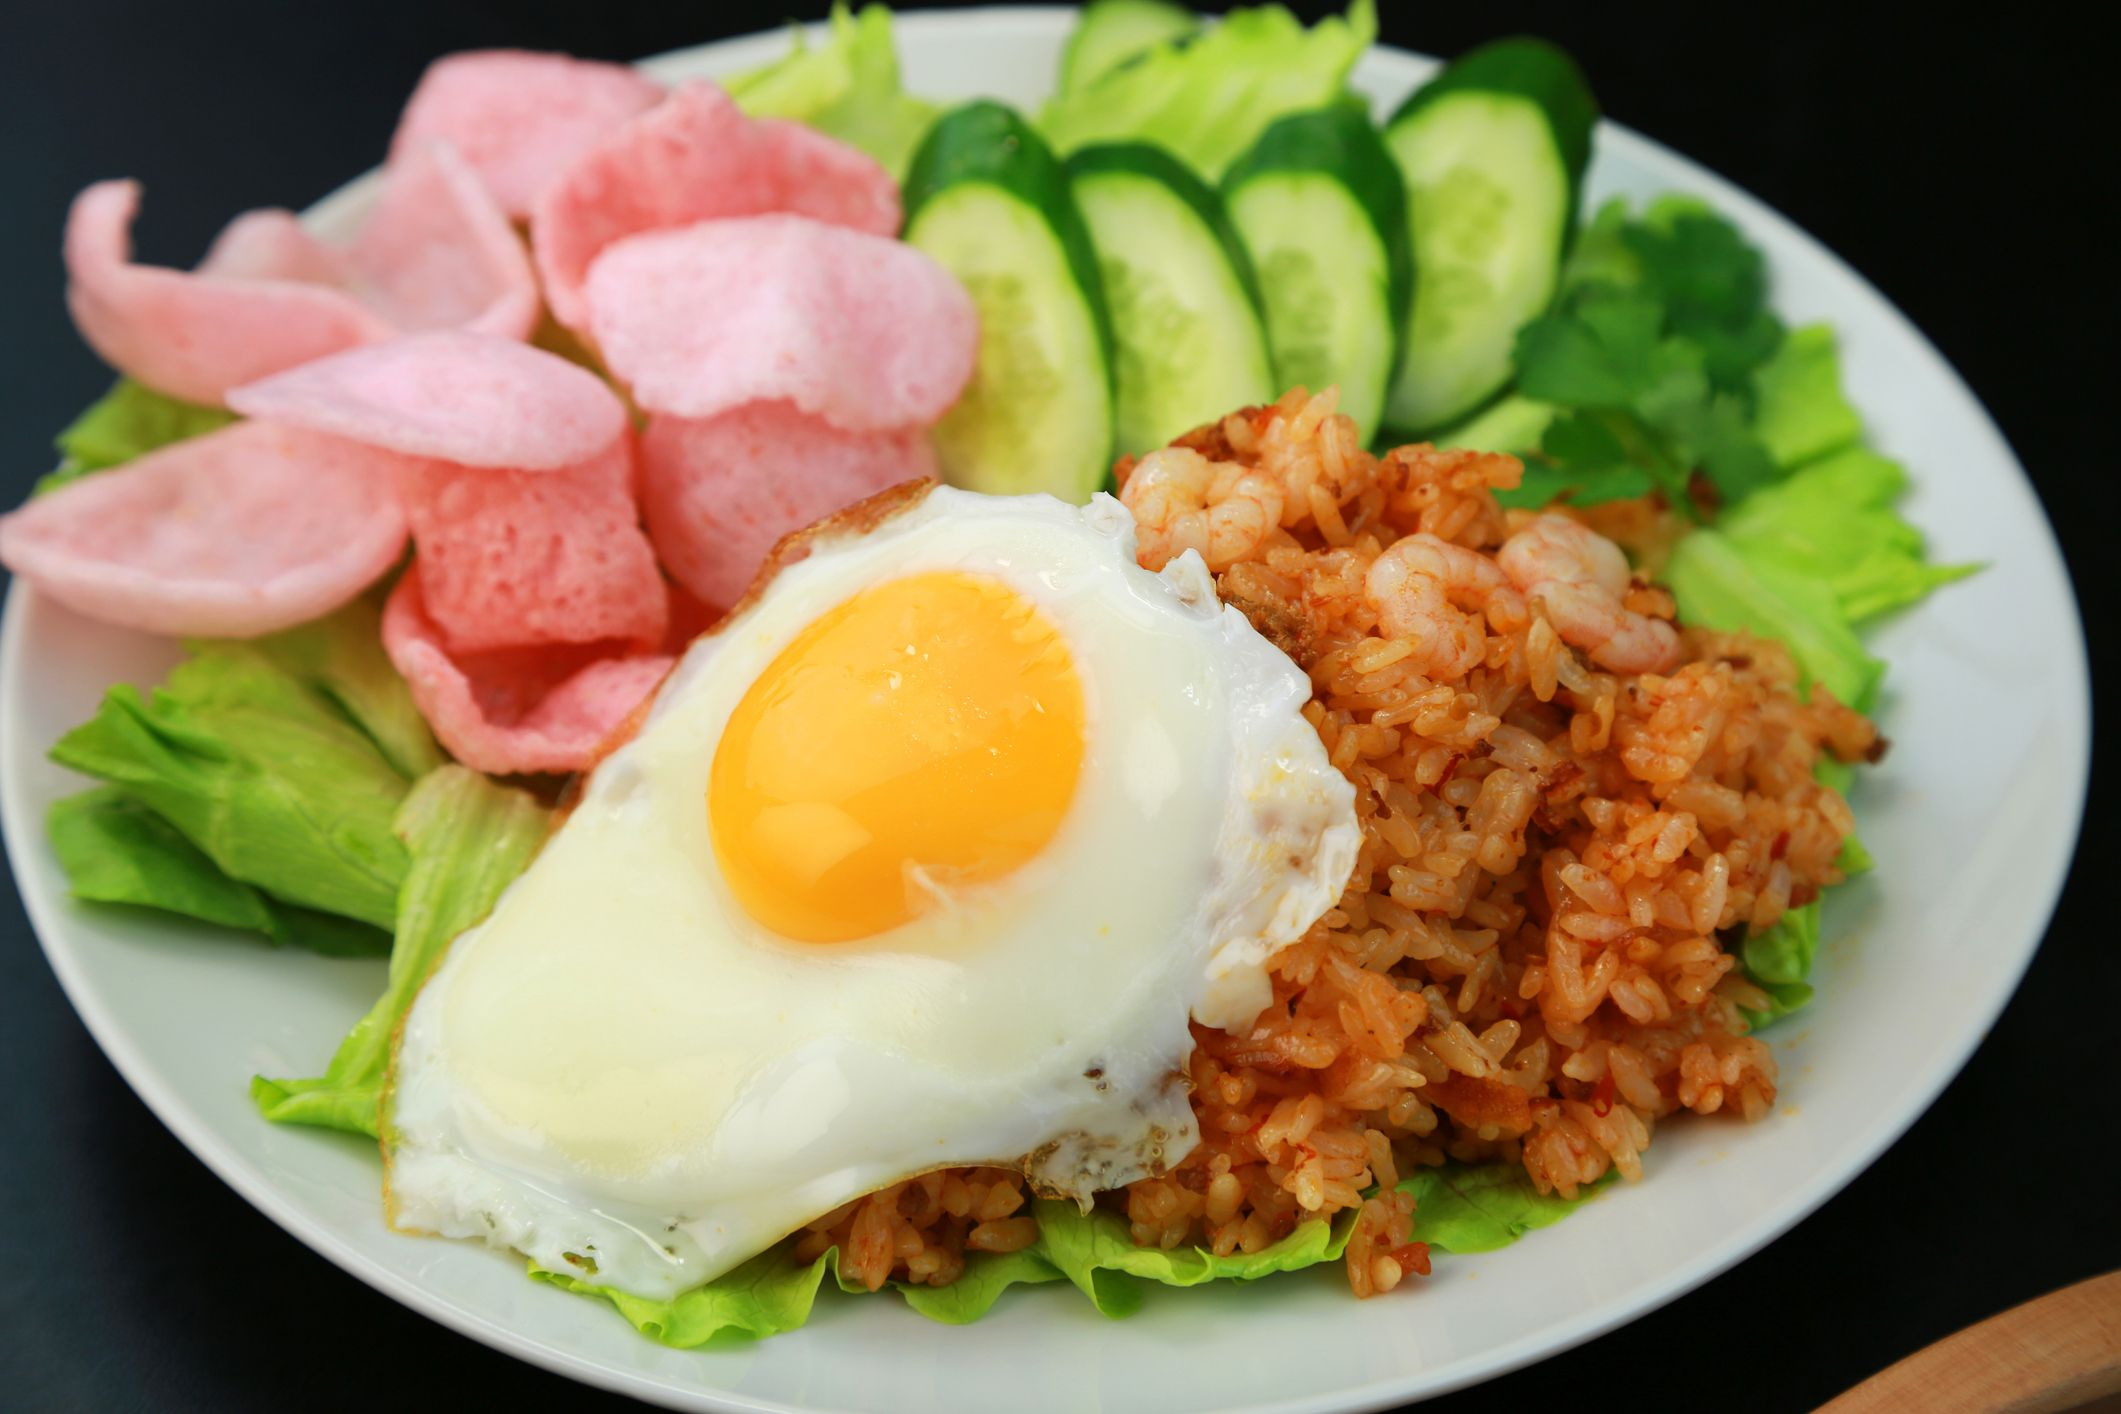 How to Eat Nasi Goreng, Indonesia's Fried Rice